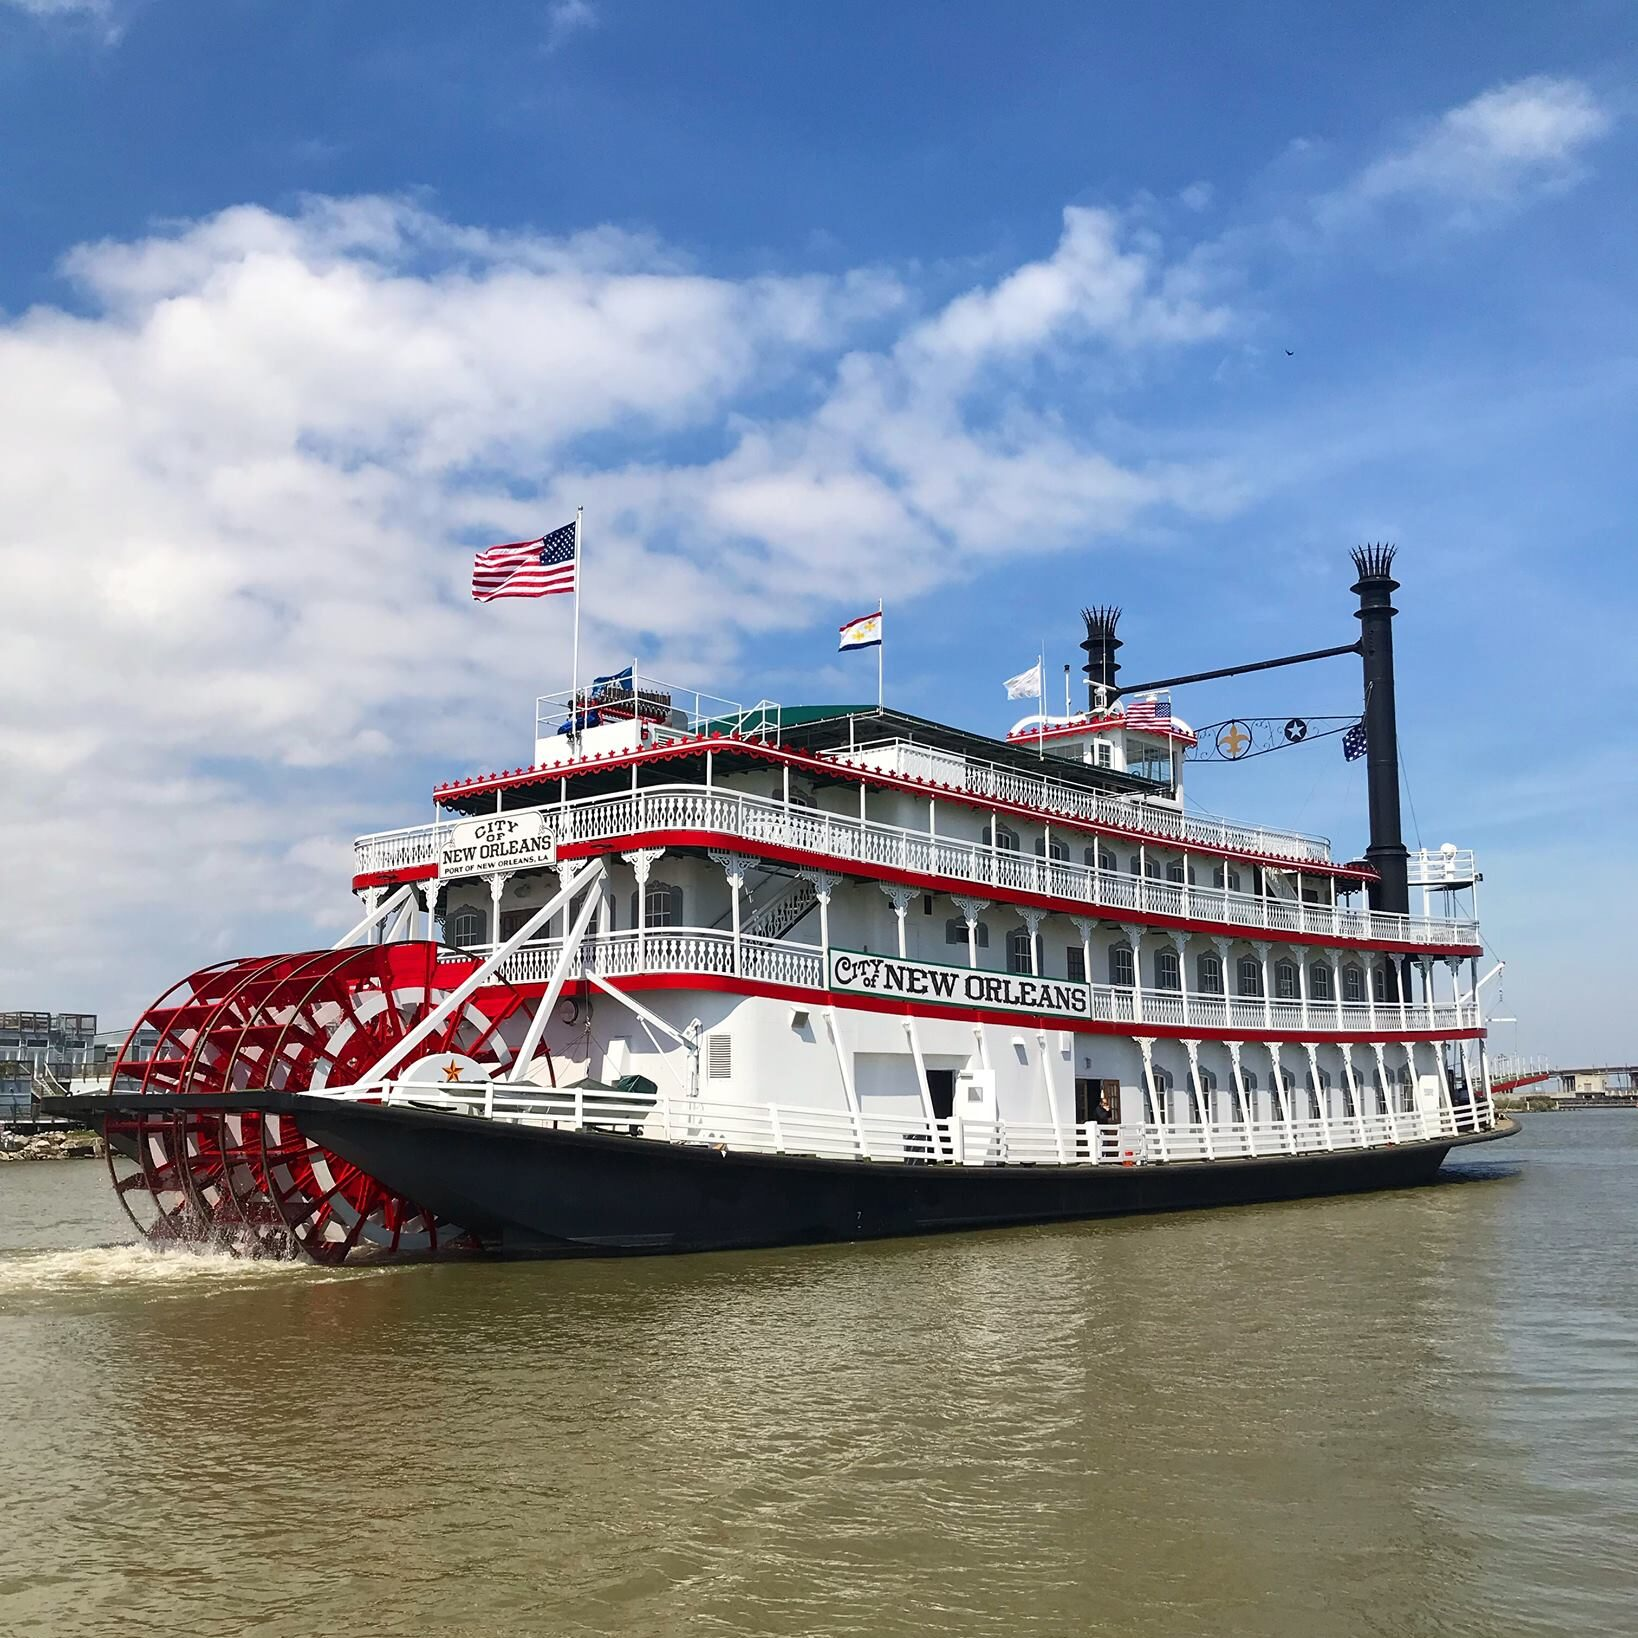 Riverboat City of New Orleans (New Orleans, LA)